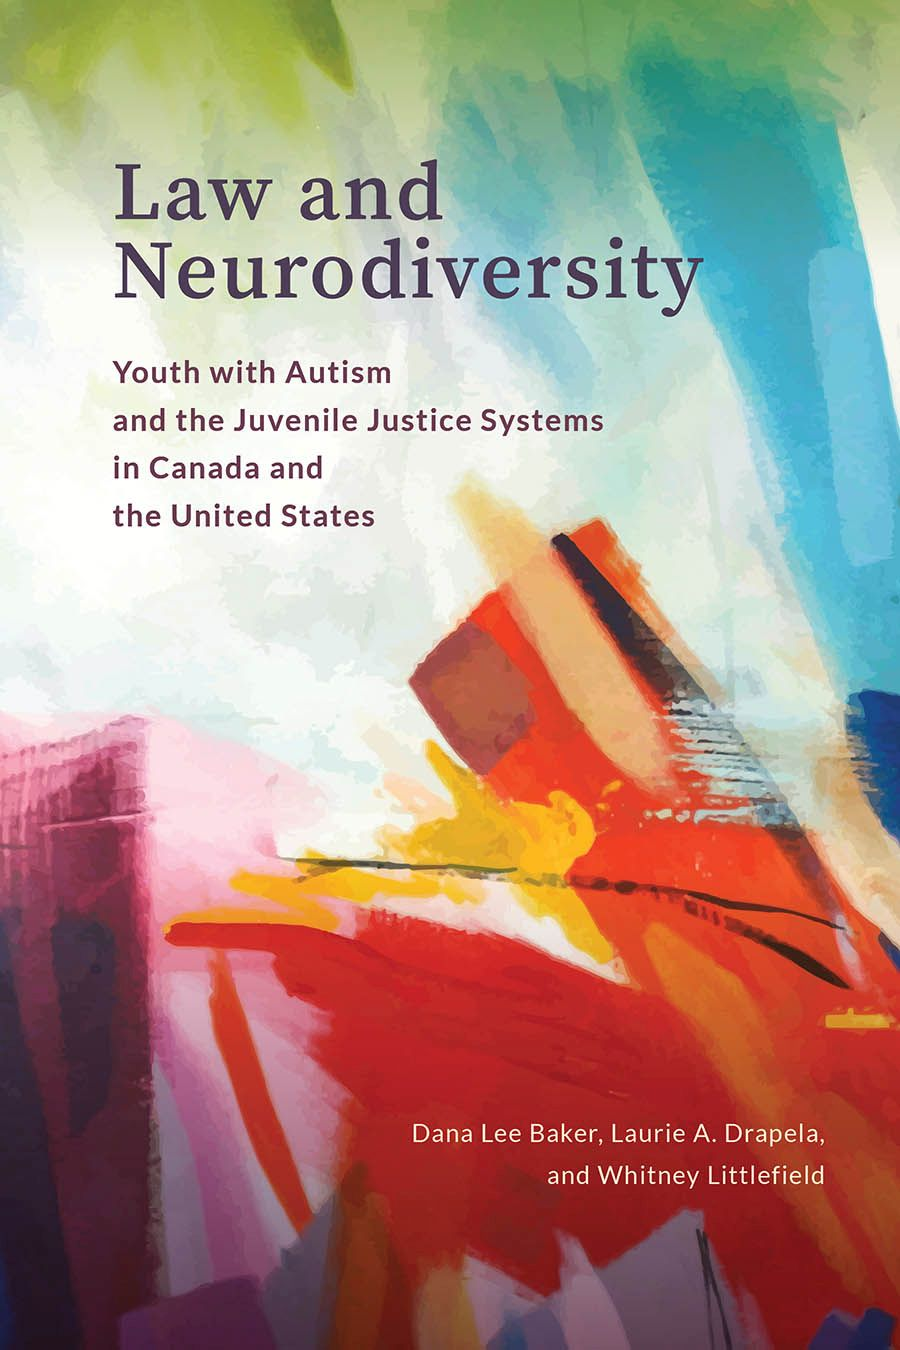 Law and Neurodiversity: Youth with Autism and the Juvenile Justice Systems in Canada and the United States